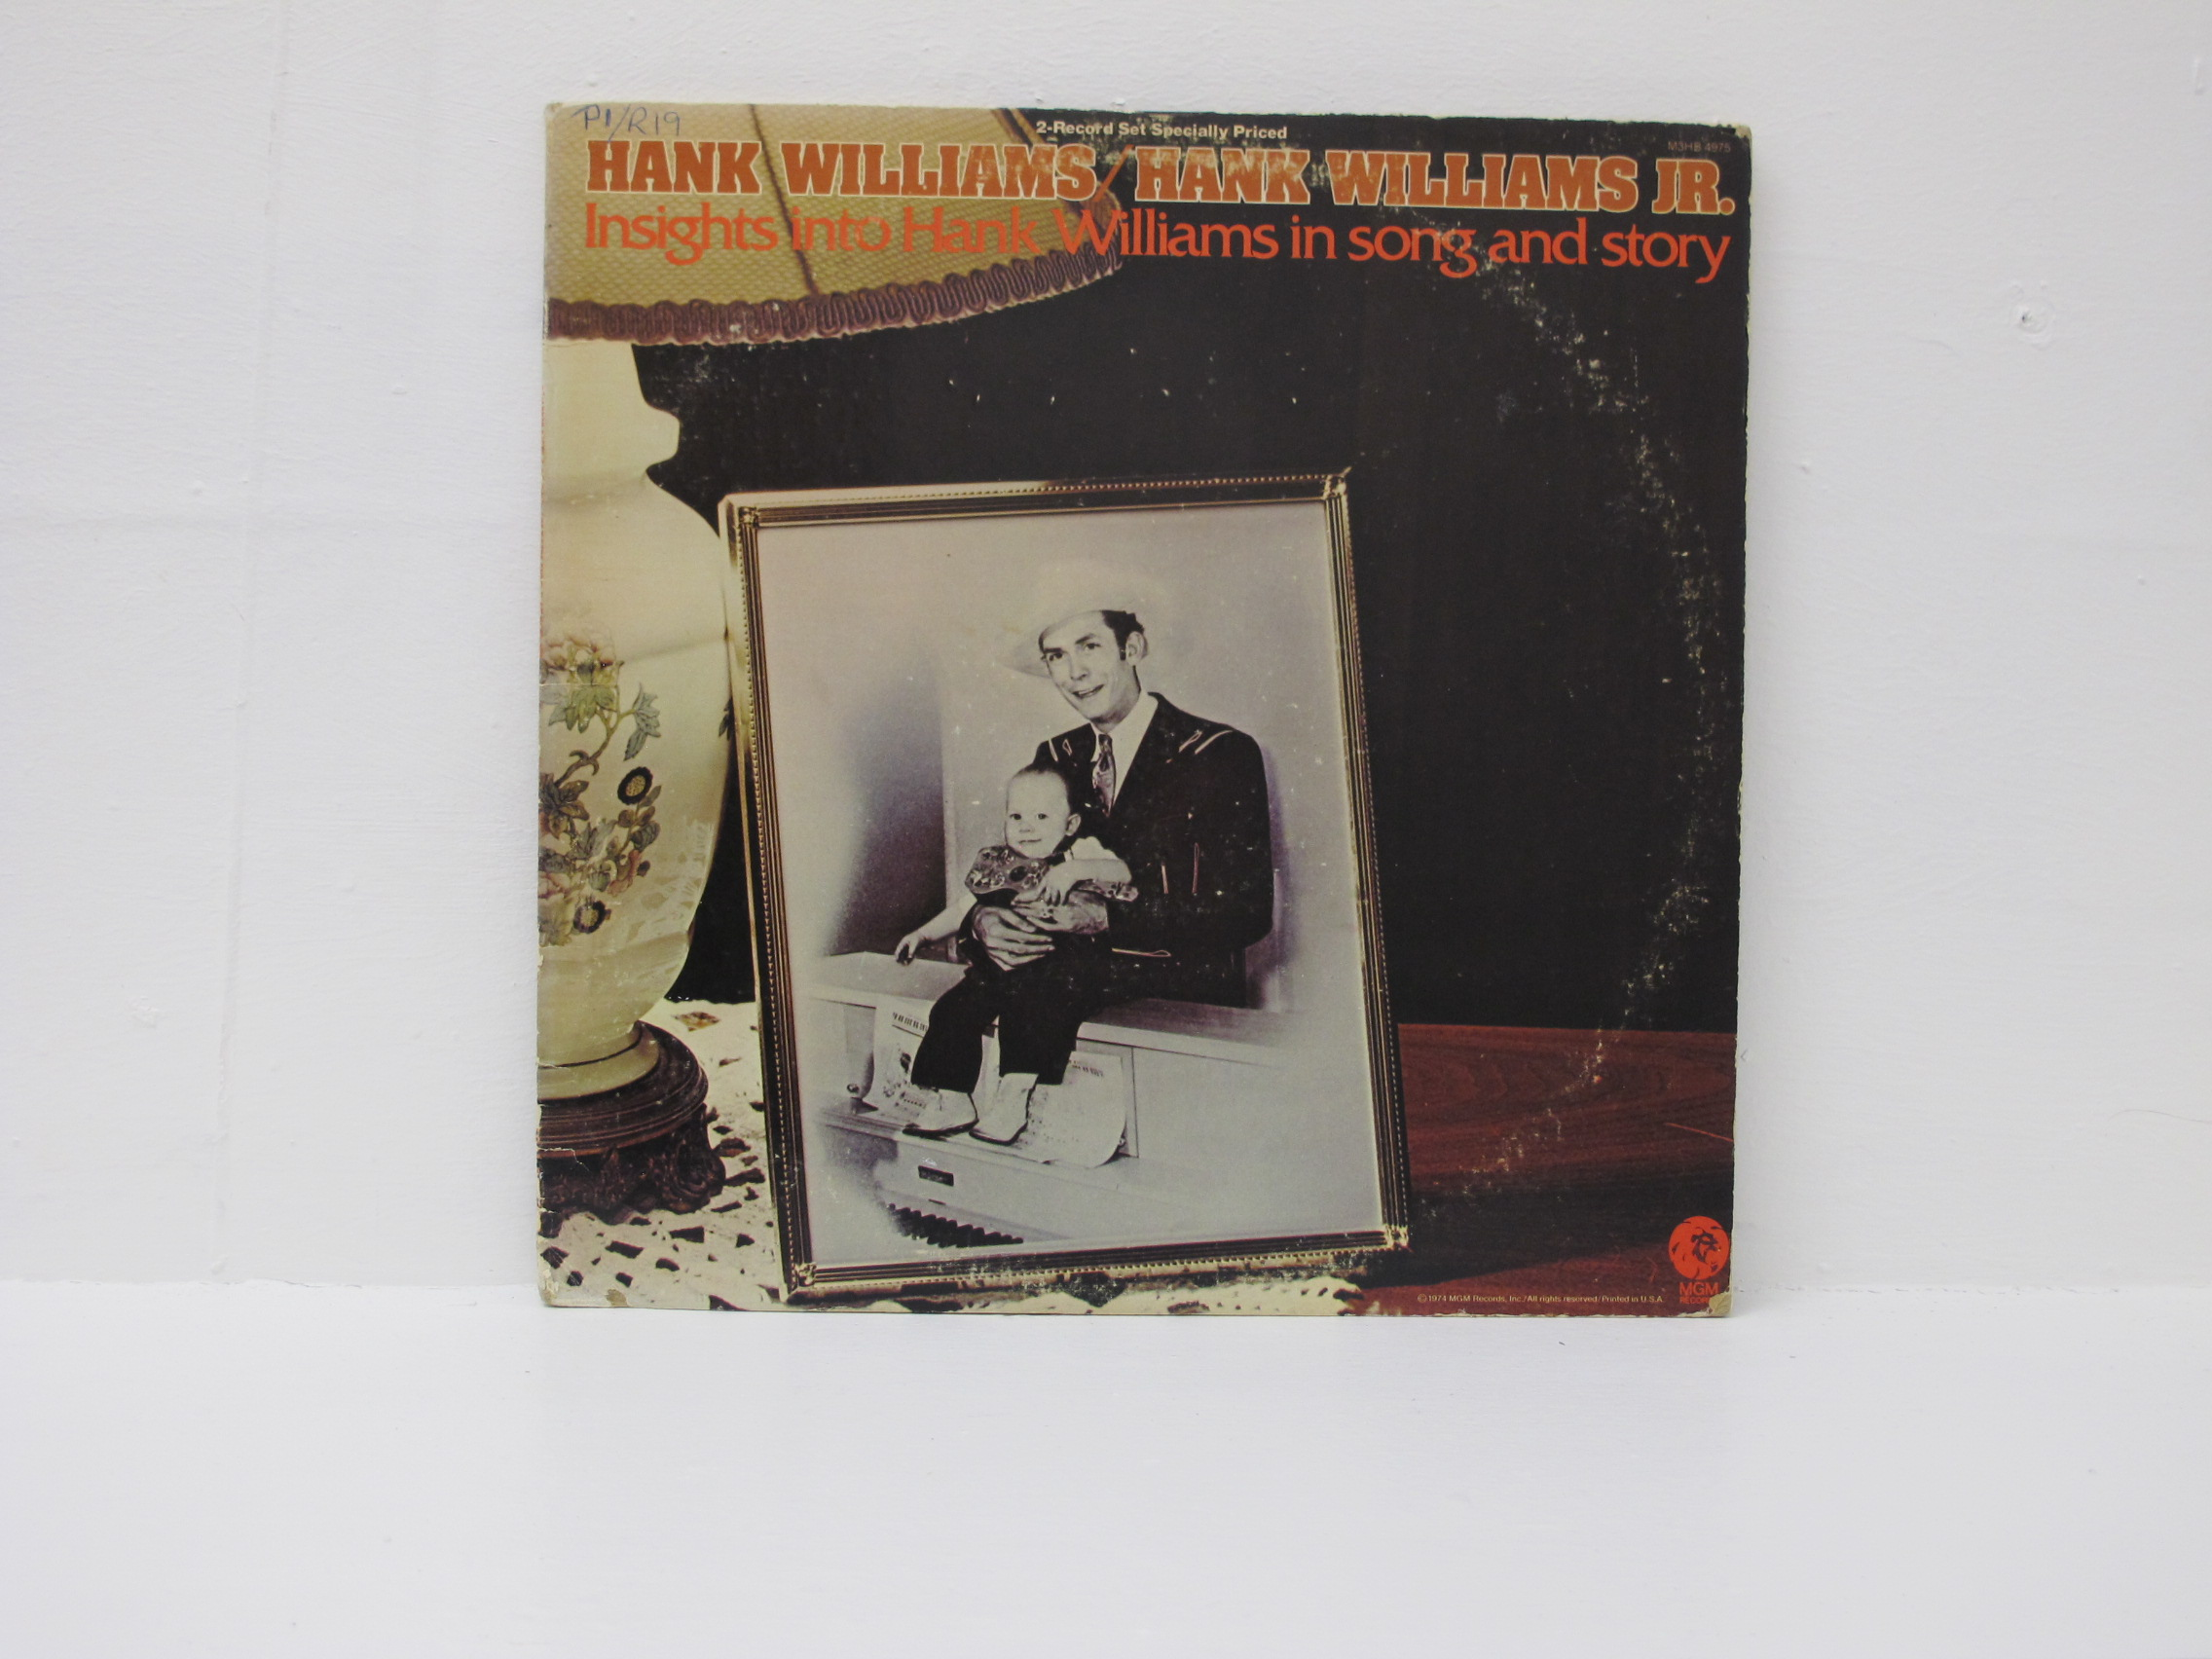 Hank Williams/Hank Williams Jr - Insights Into Hank Williams In Song And Story